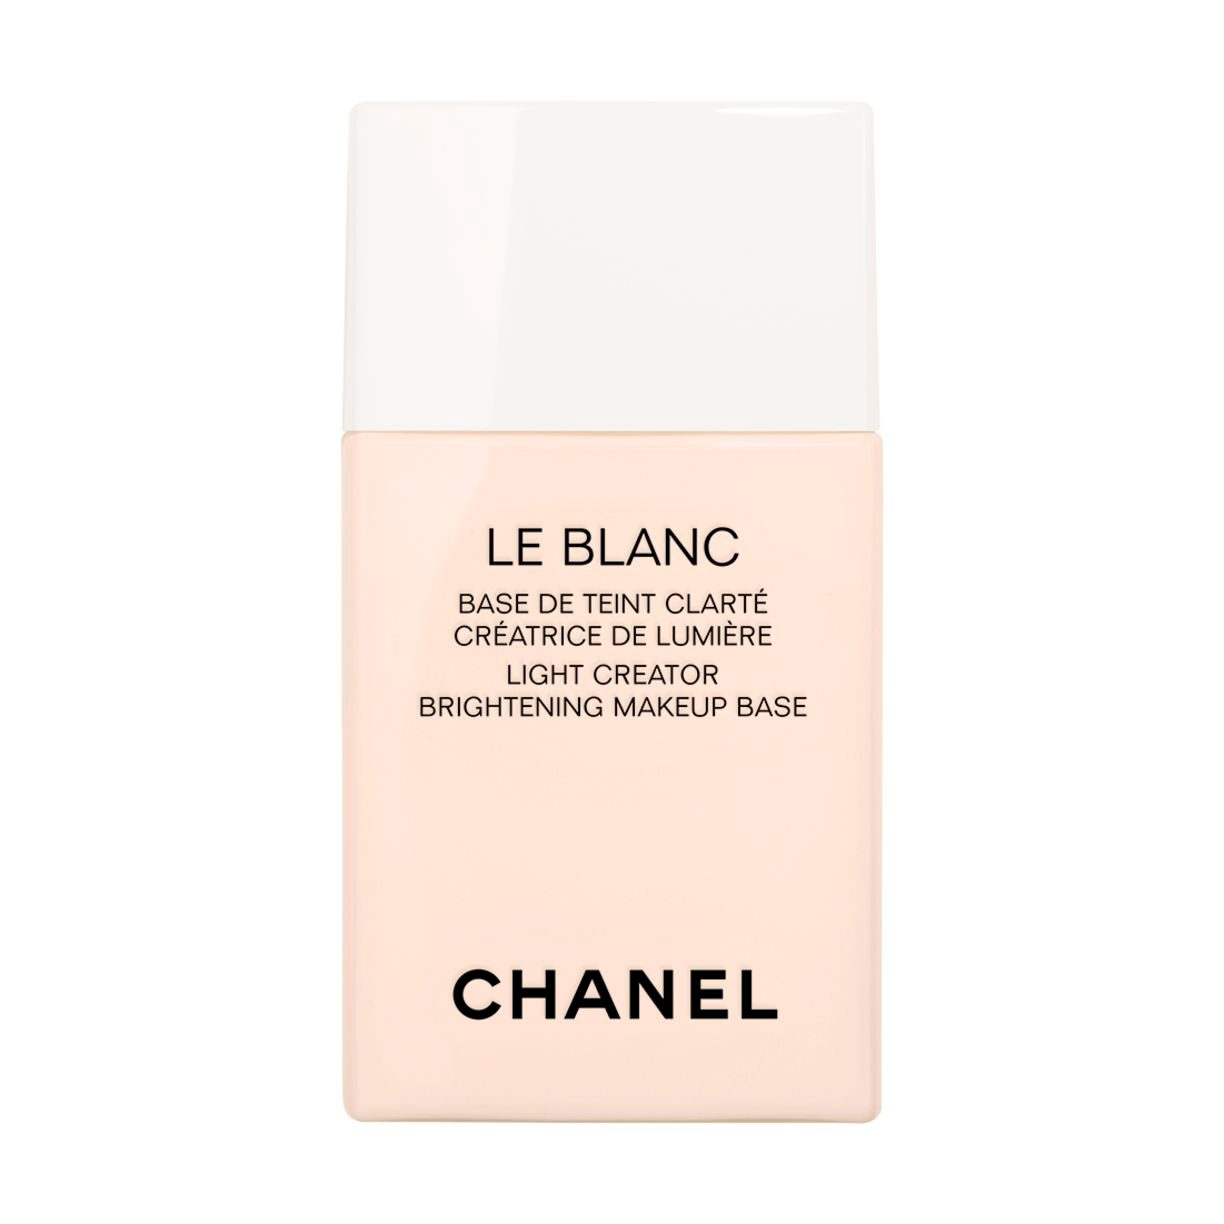 LE BLANC LIGHT CREATOR BRIGHTENING MAKEUP BASE